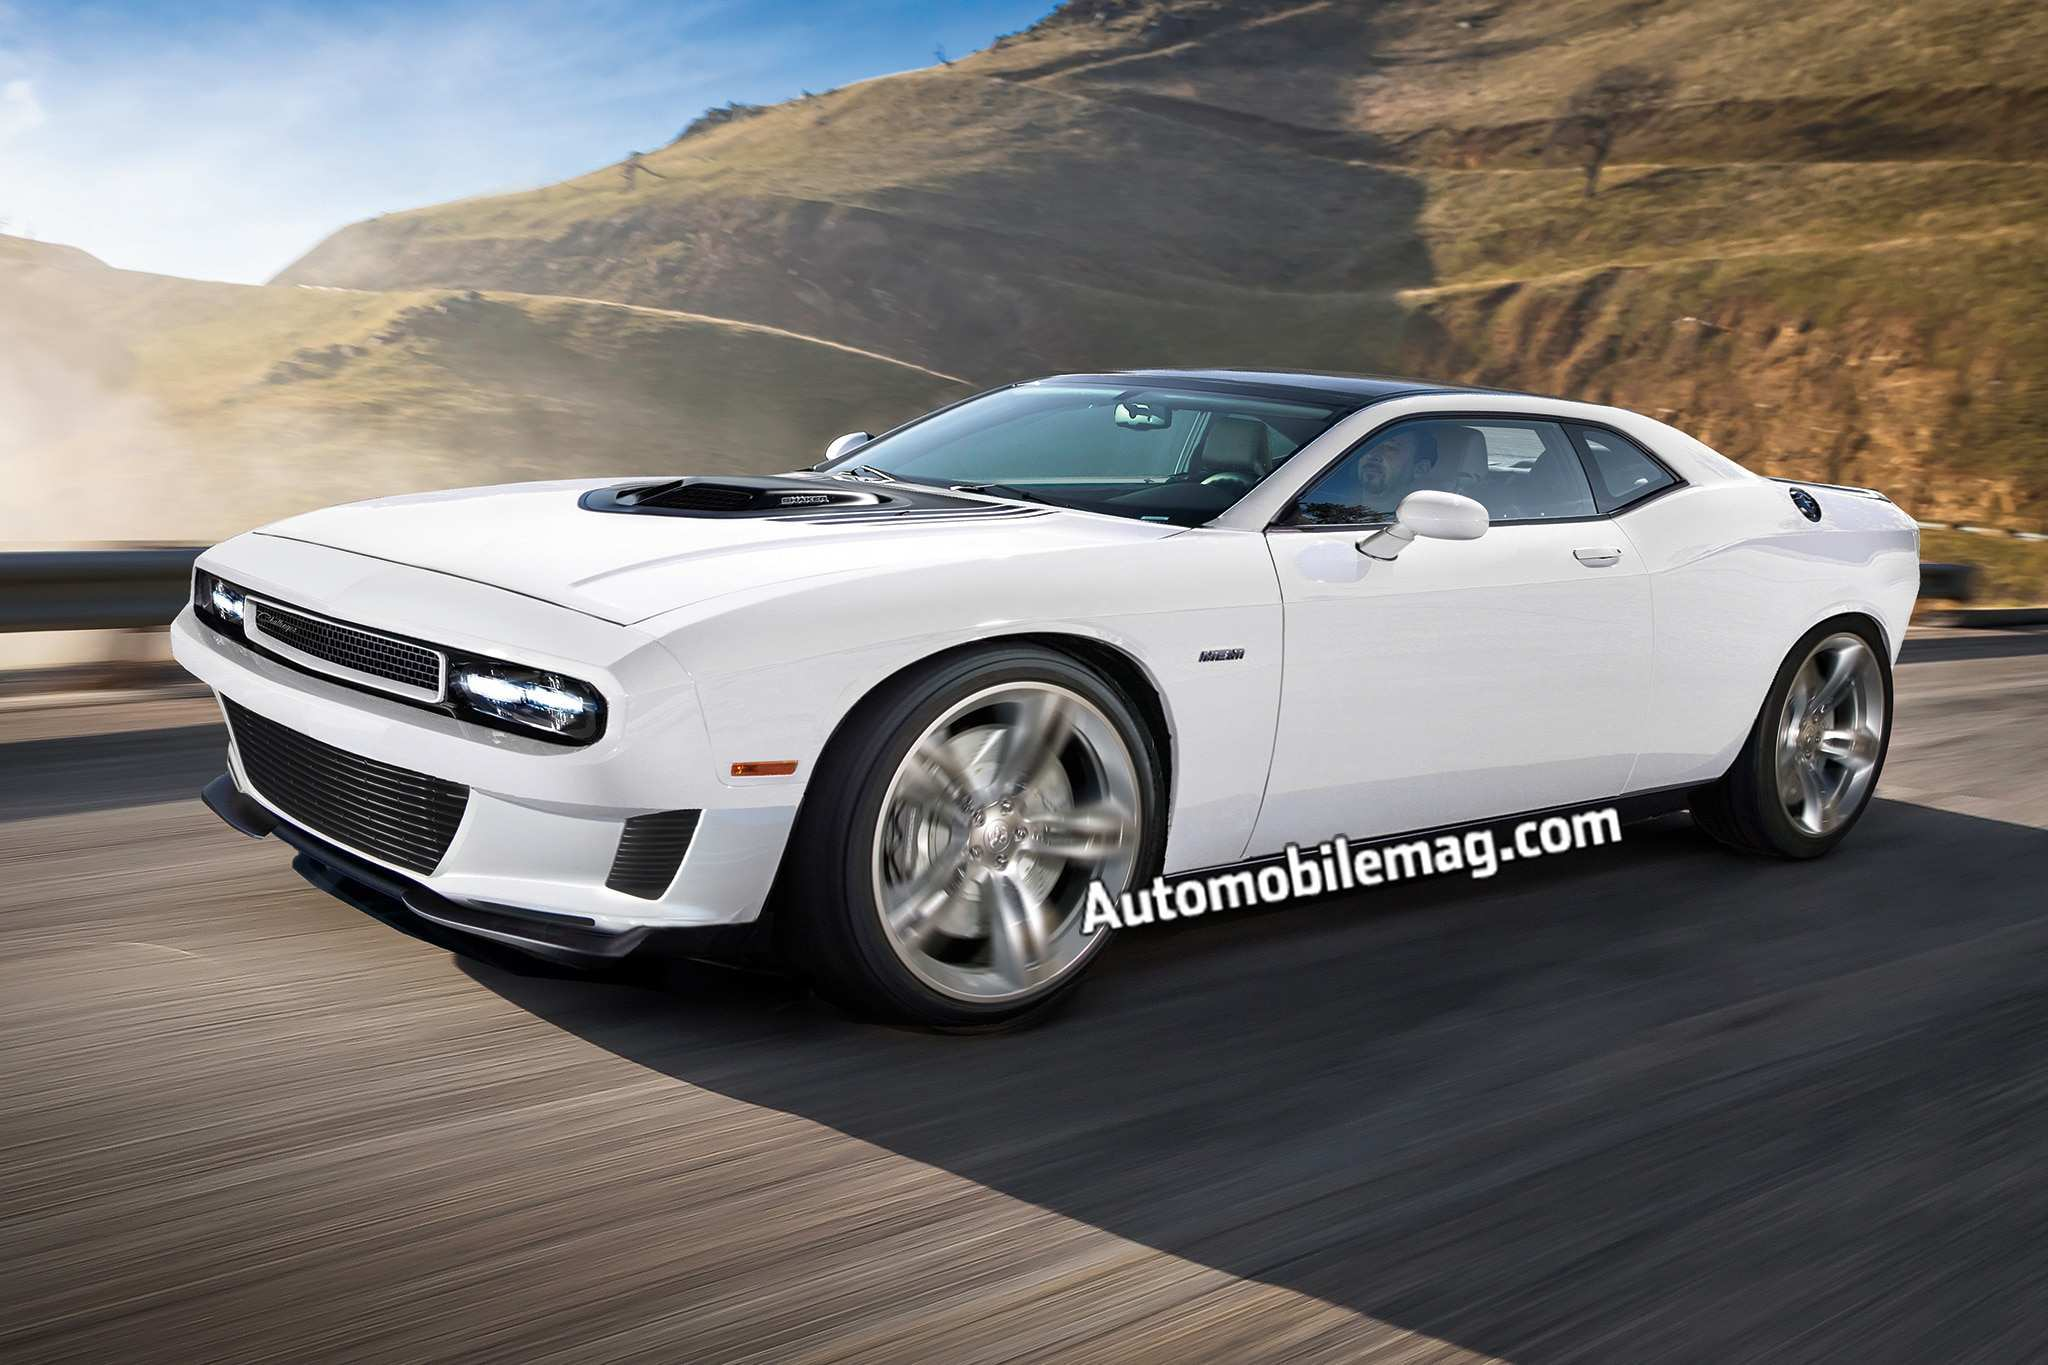 46 Great Images Of 2020 Dodge Challenger Pictures with Images Of 2020 Dodge Challenger